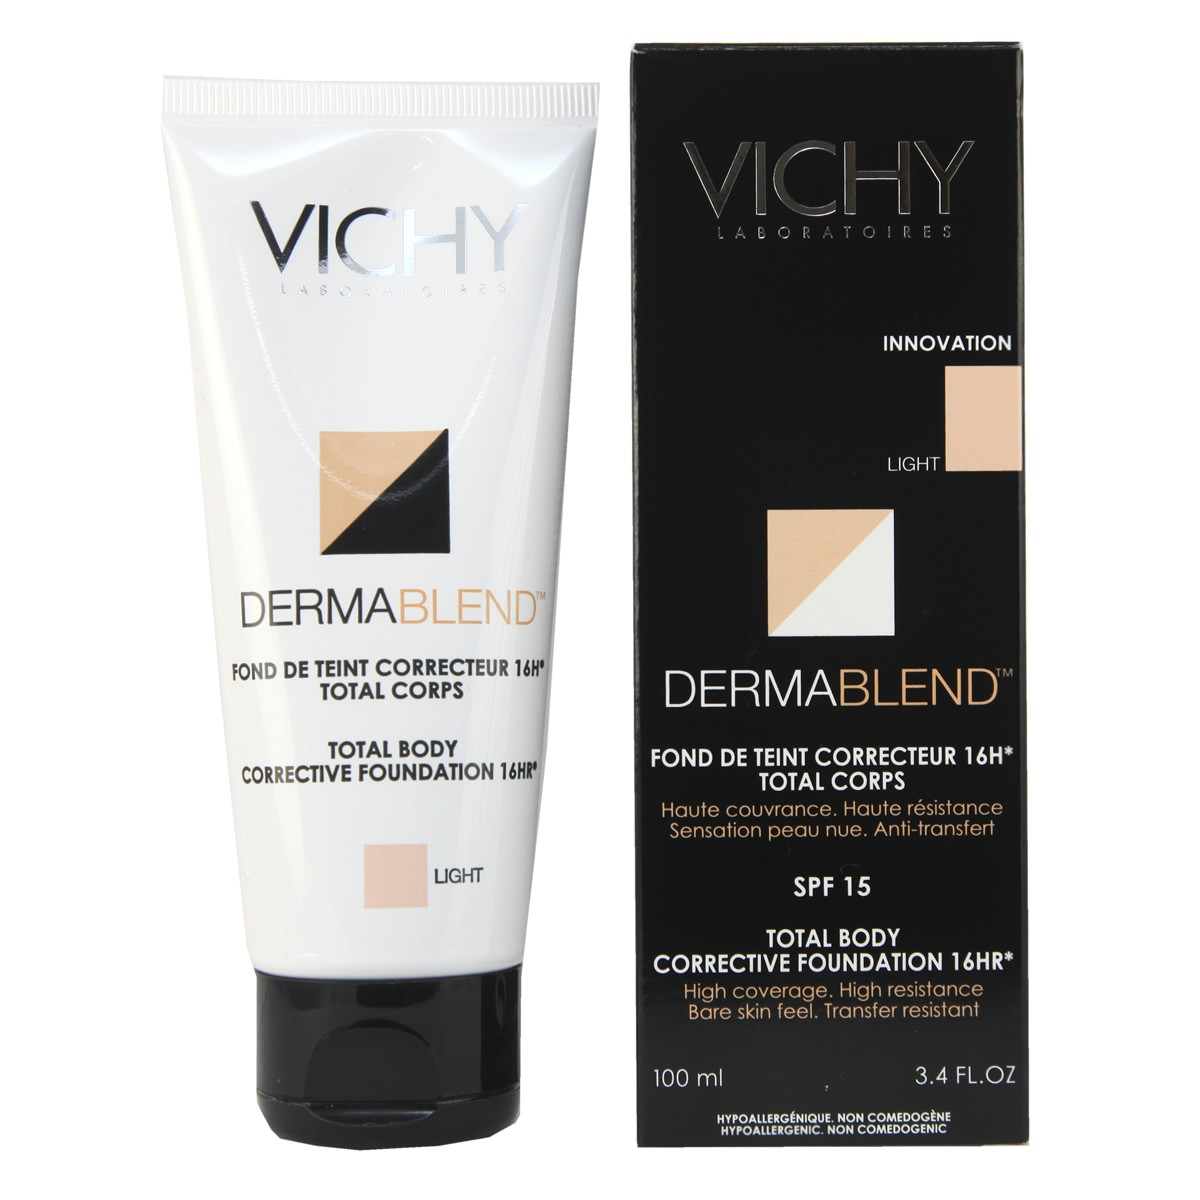 Vichy Dermablend Total Body Corrective Foundation 16Hr